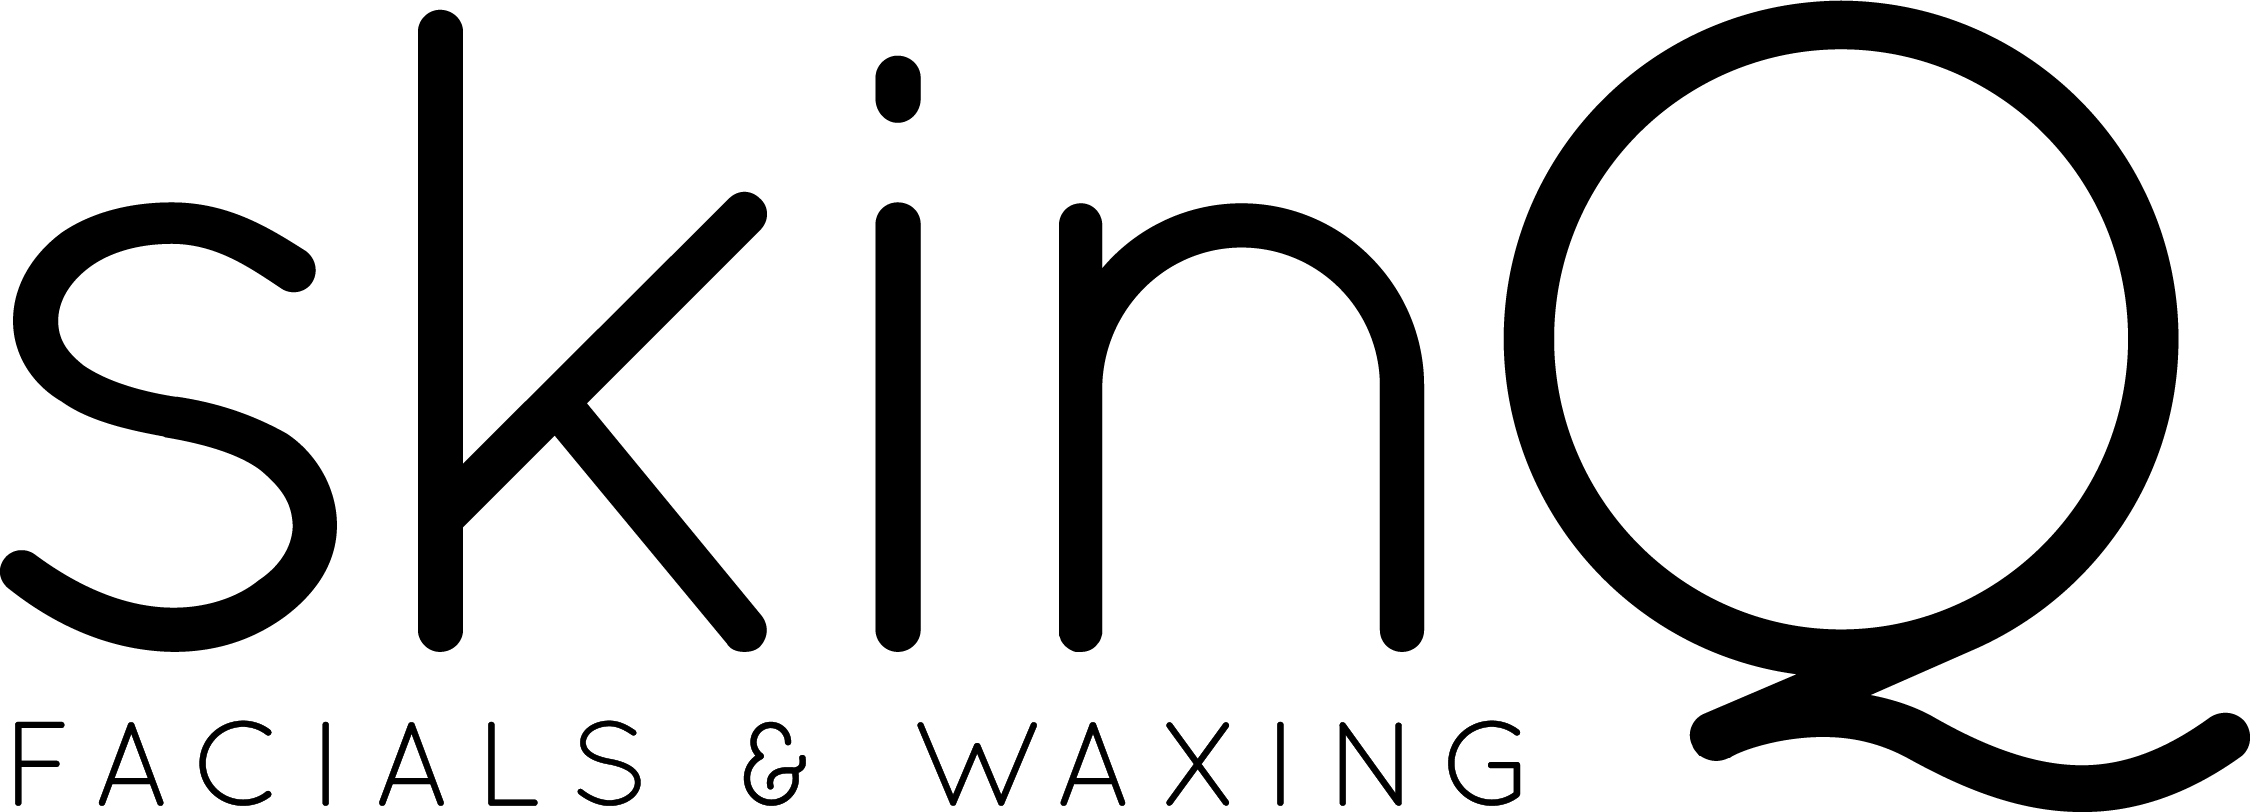 SkinQ | Facials & Waxing | Personalized Skin Care